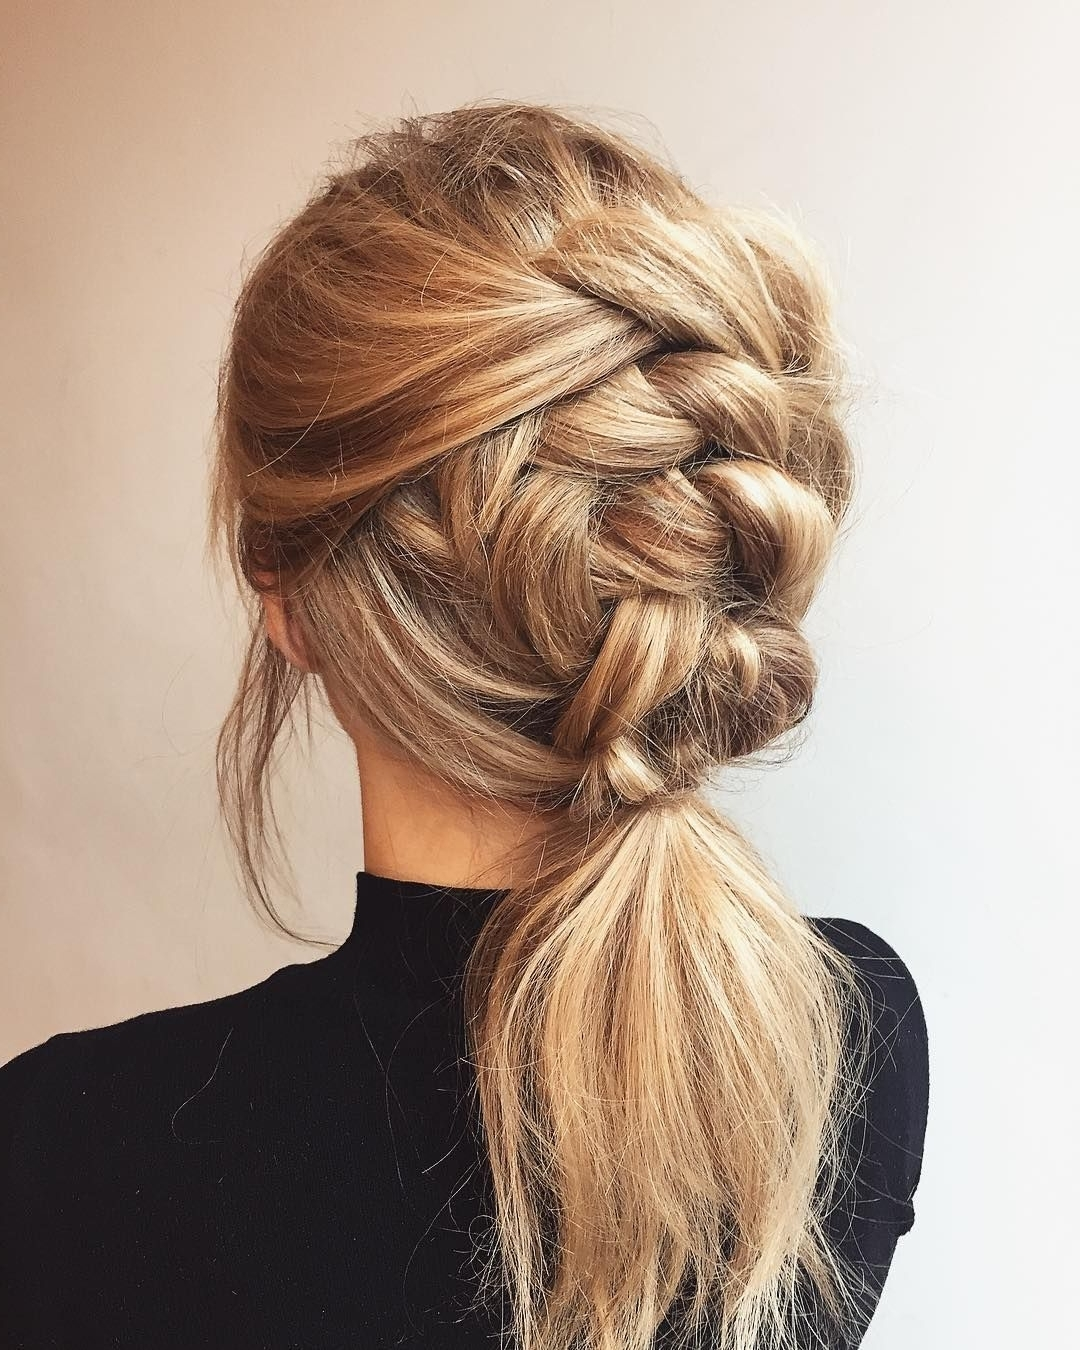 Preferred Braided And Knotted Ponytail Hairstyles Intended For Four Strand Knotted Ponytail : Featured Hairstyle Inspiration (View 16 of 20)